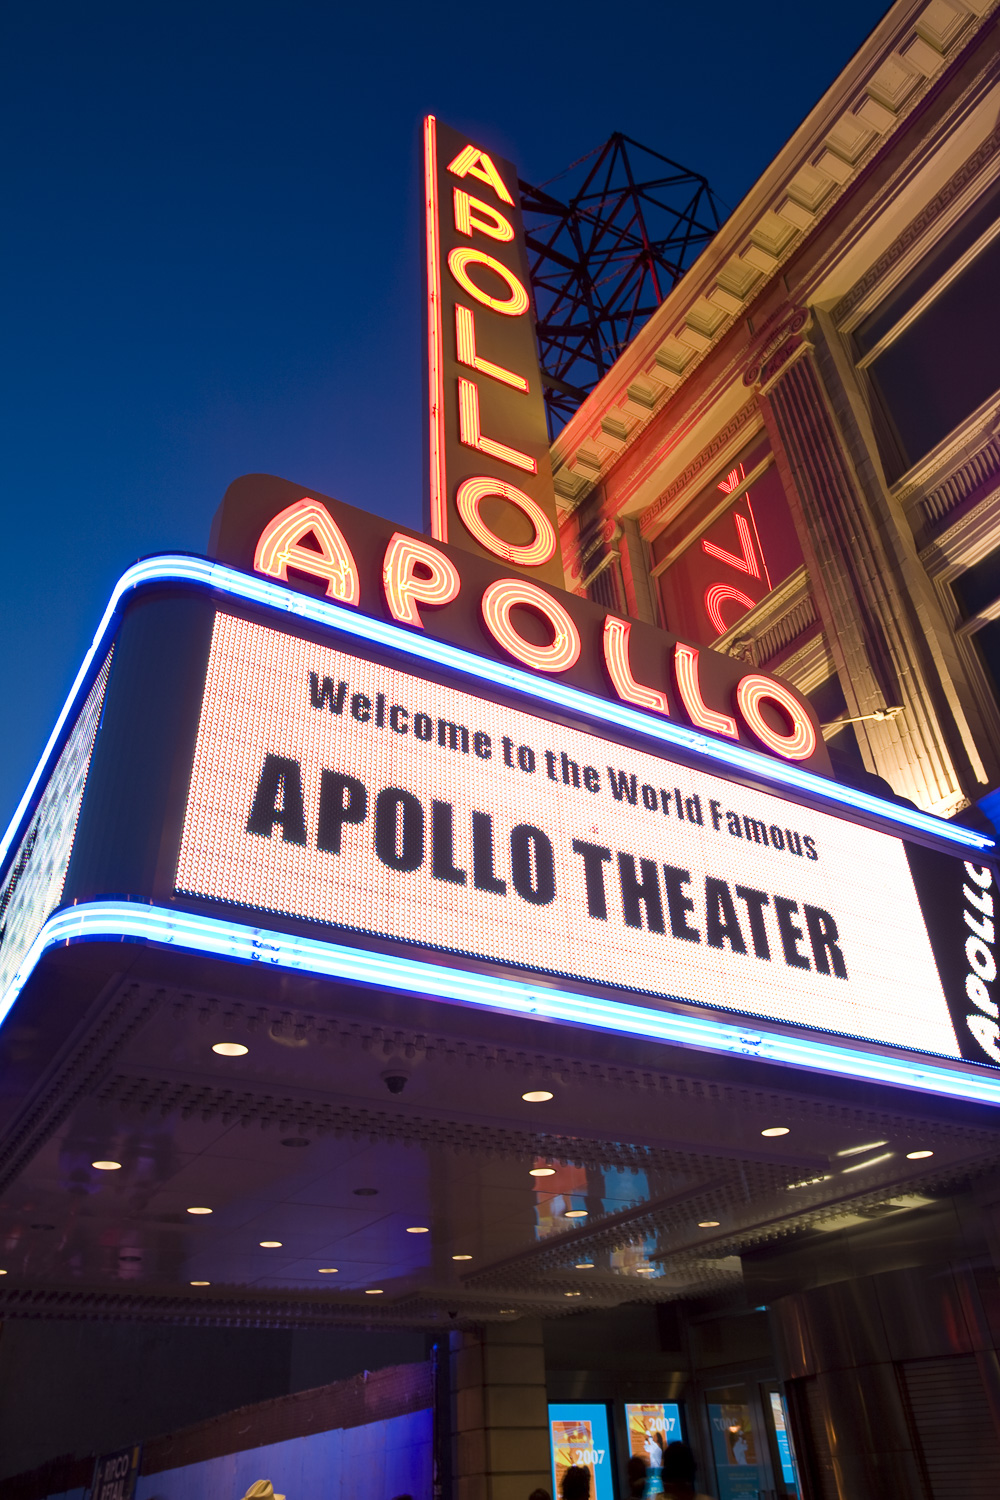 Apollo Theater, 125th Street, Harlem, Manhattan, New York